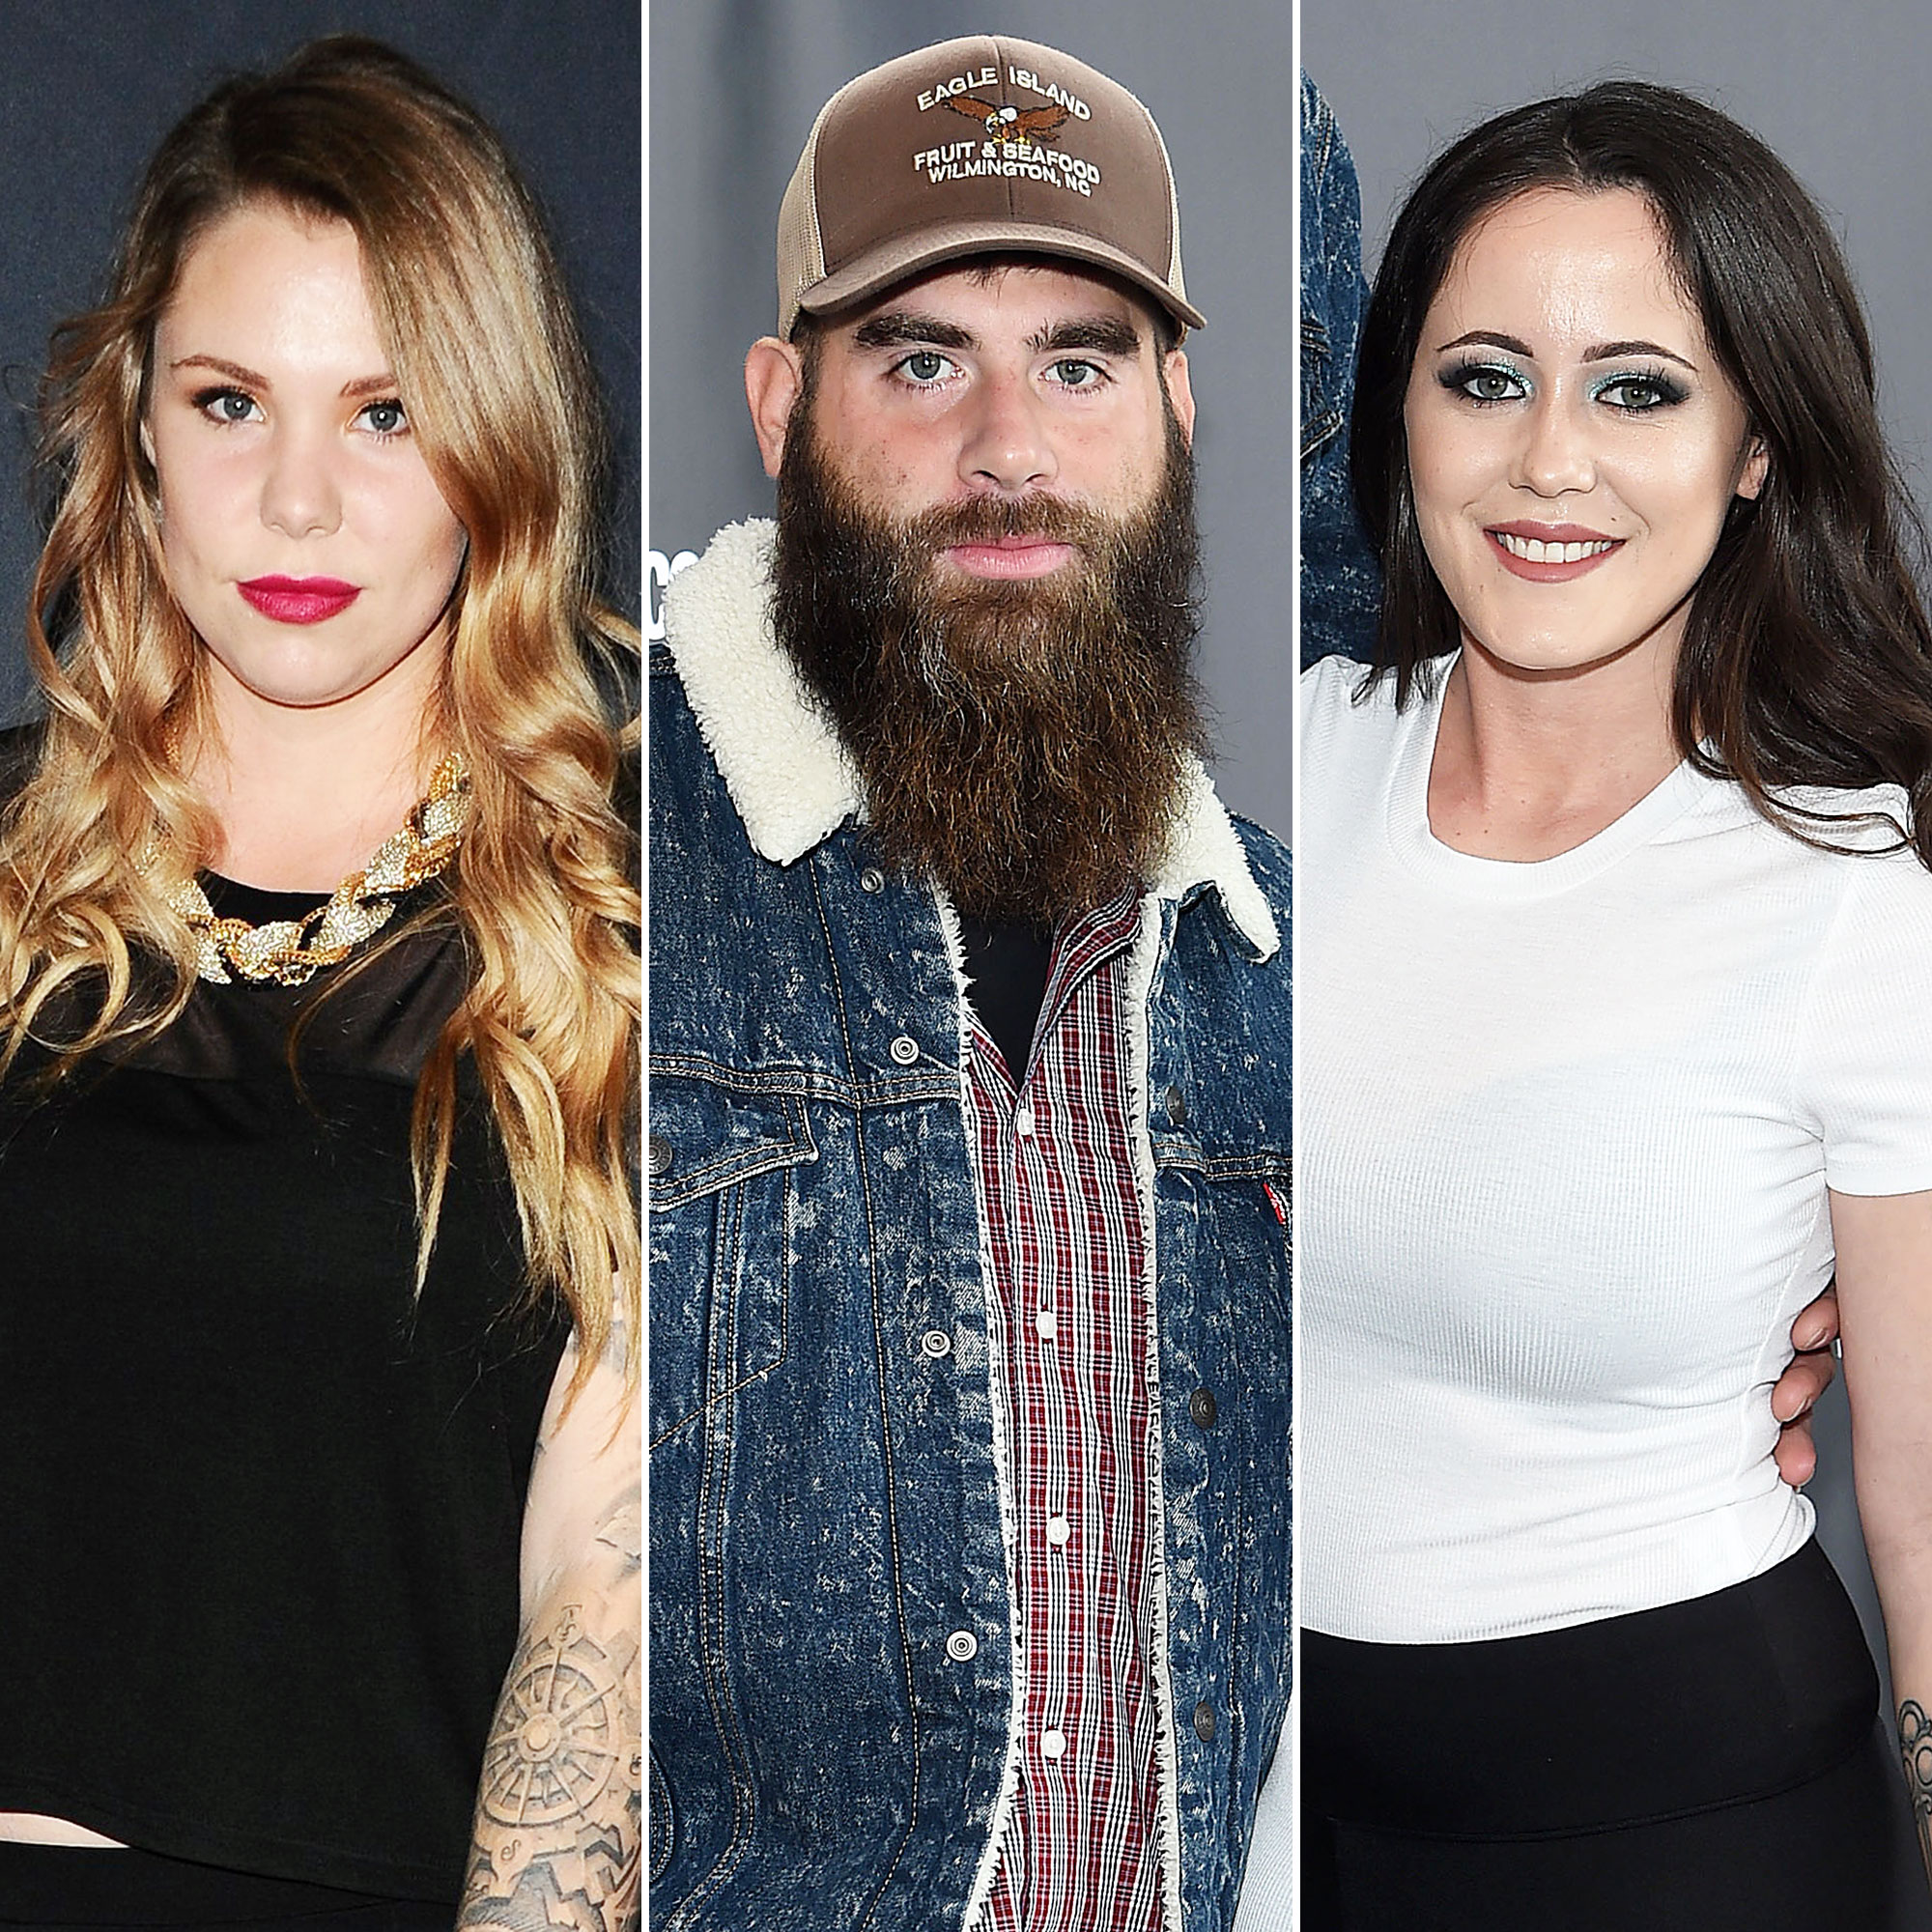 Kailyn Lowry Disgusted Appalled David Eason Jenelle Evans Dog Killing